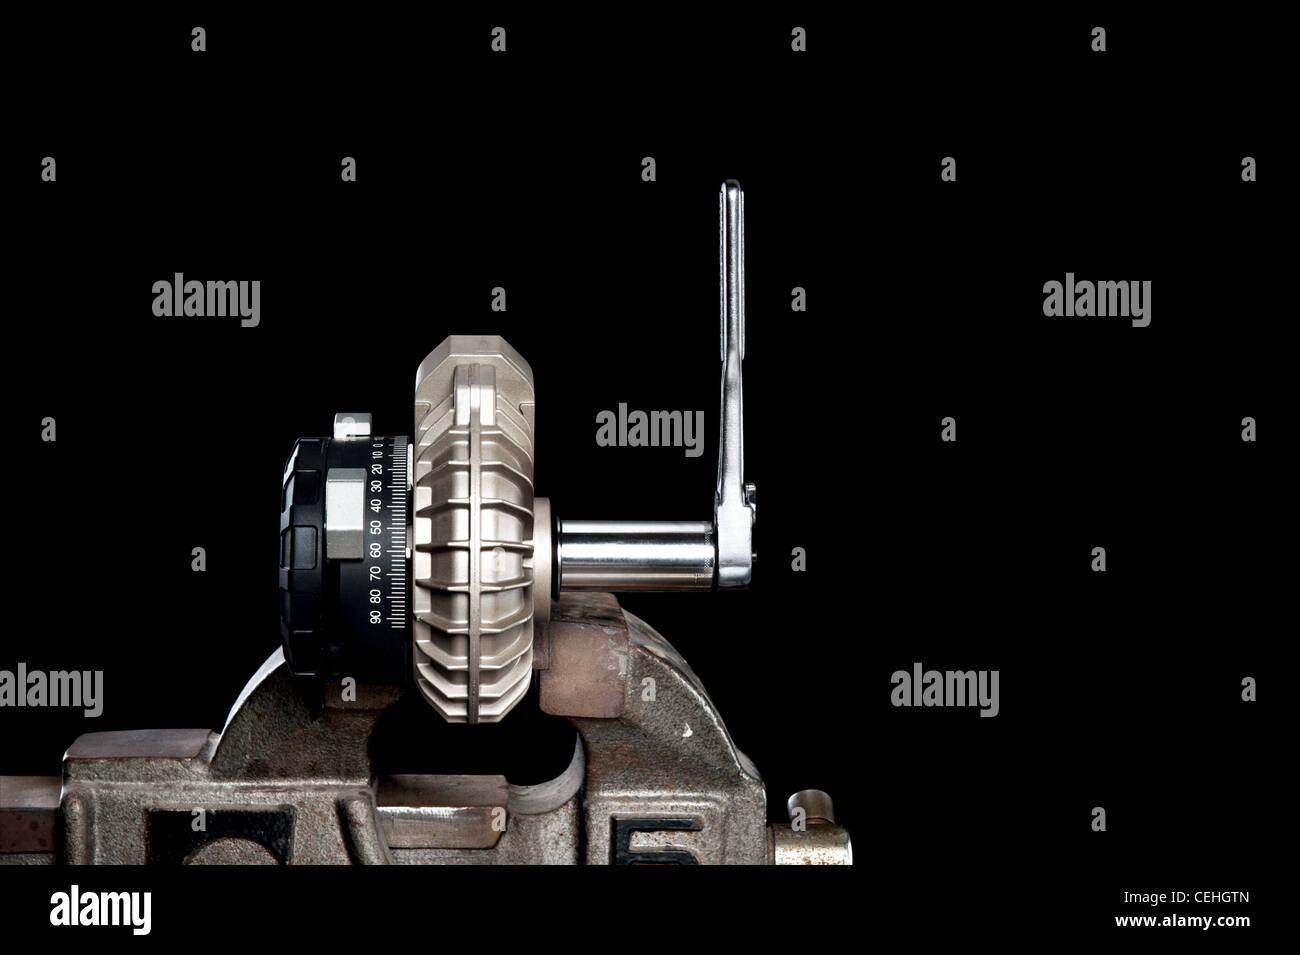 A small mechanical pump in a vice isolated on black for placement of copy. - Stock Image